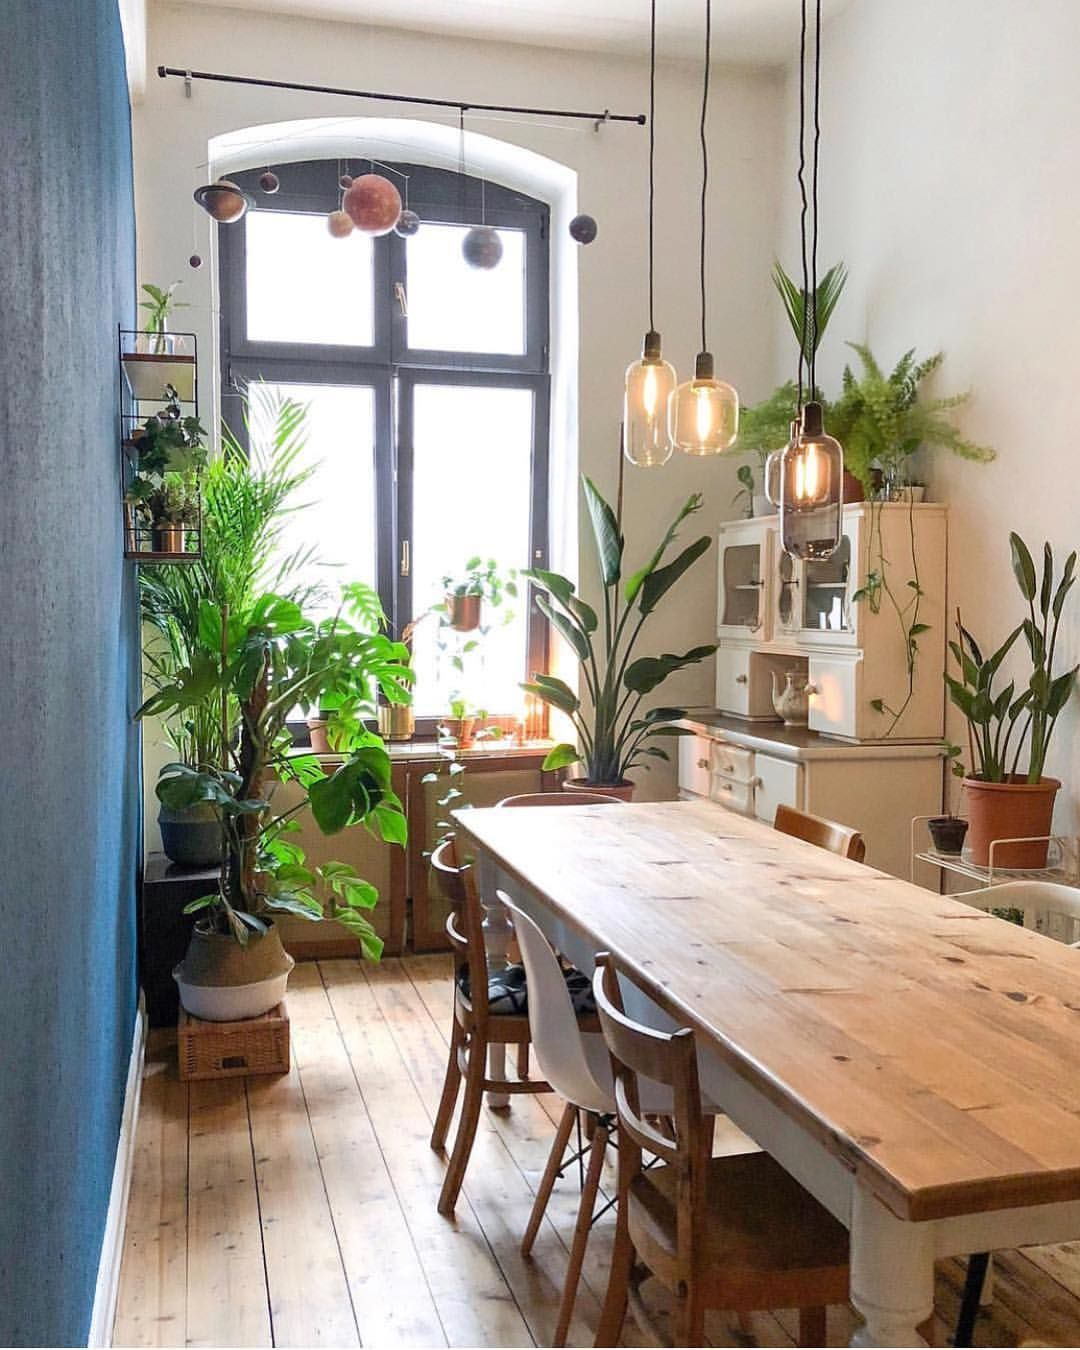 Kitchen Dining Interior Design: An Industrial Dining Room Style For The Stars!